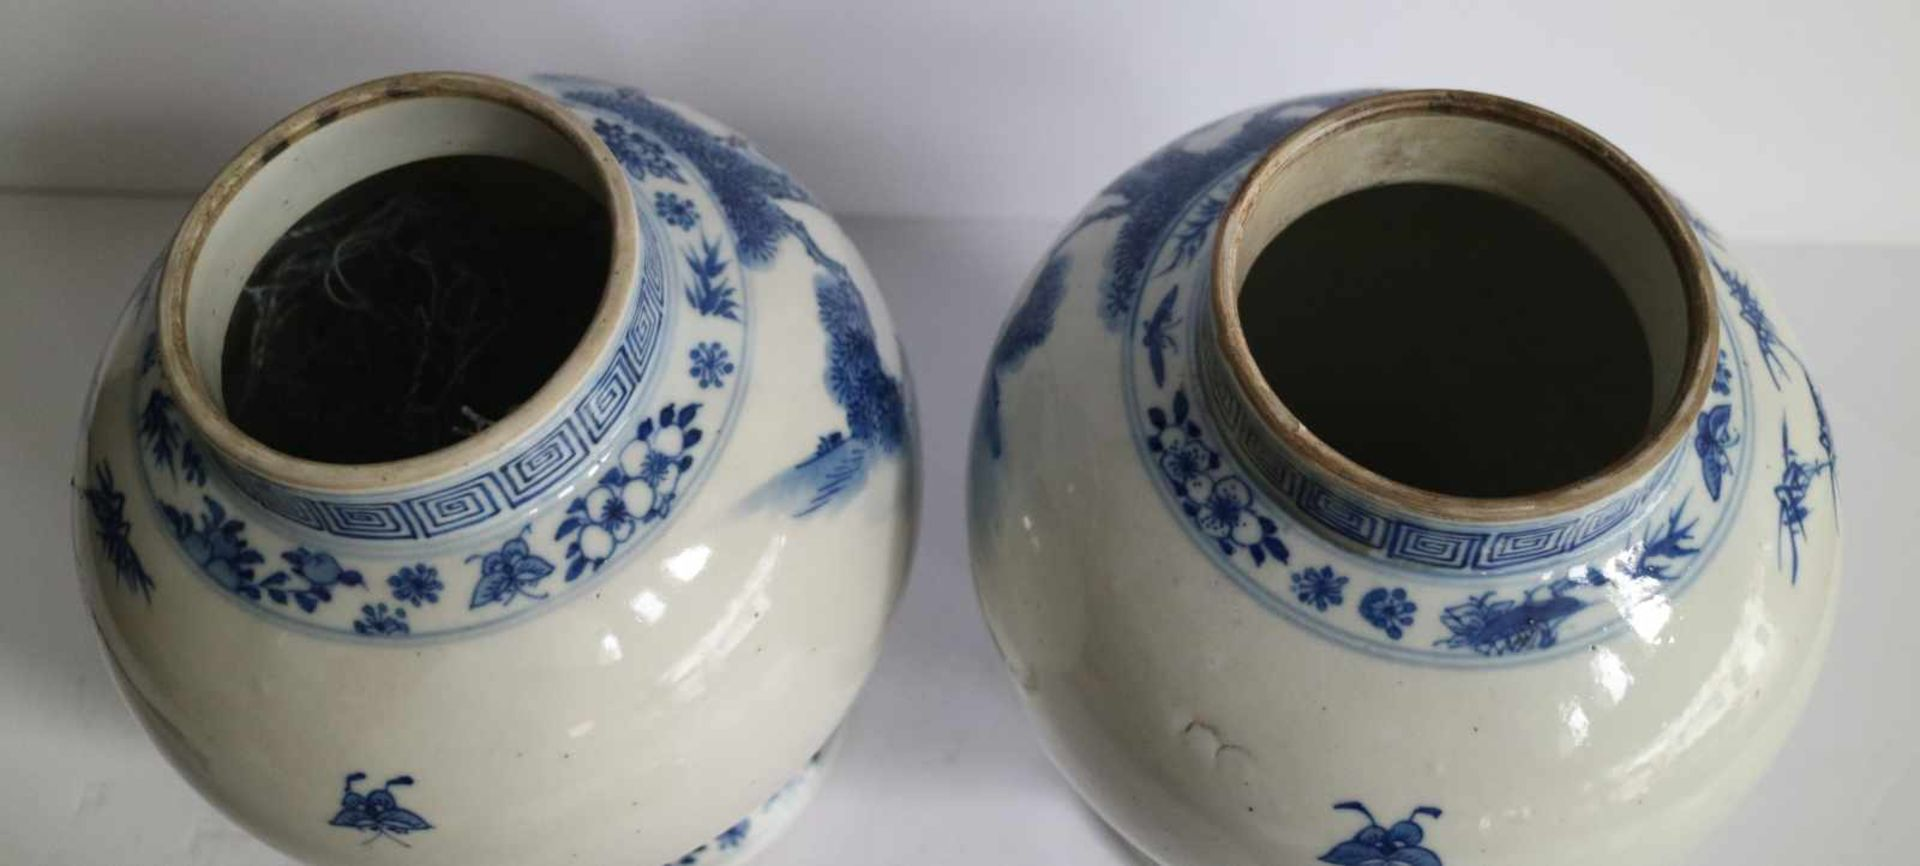 Los 340 - Chinese porcelain pair of blue and white lidded pots 1900 H 31 damage to lid / restoration